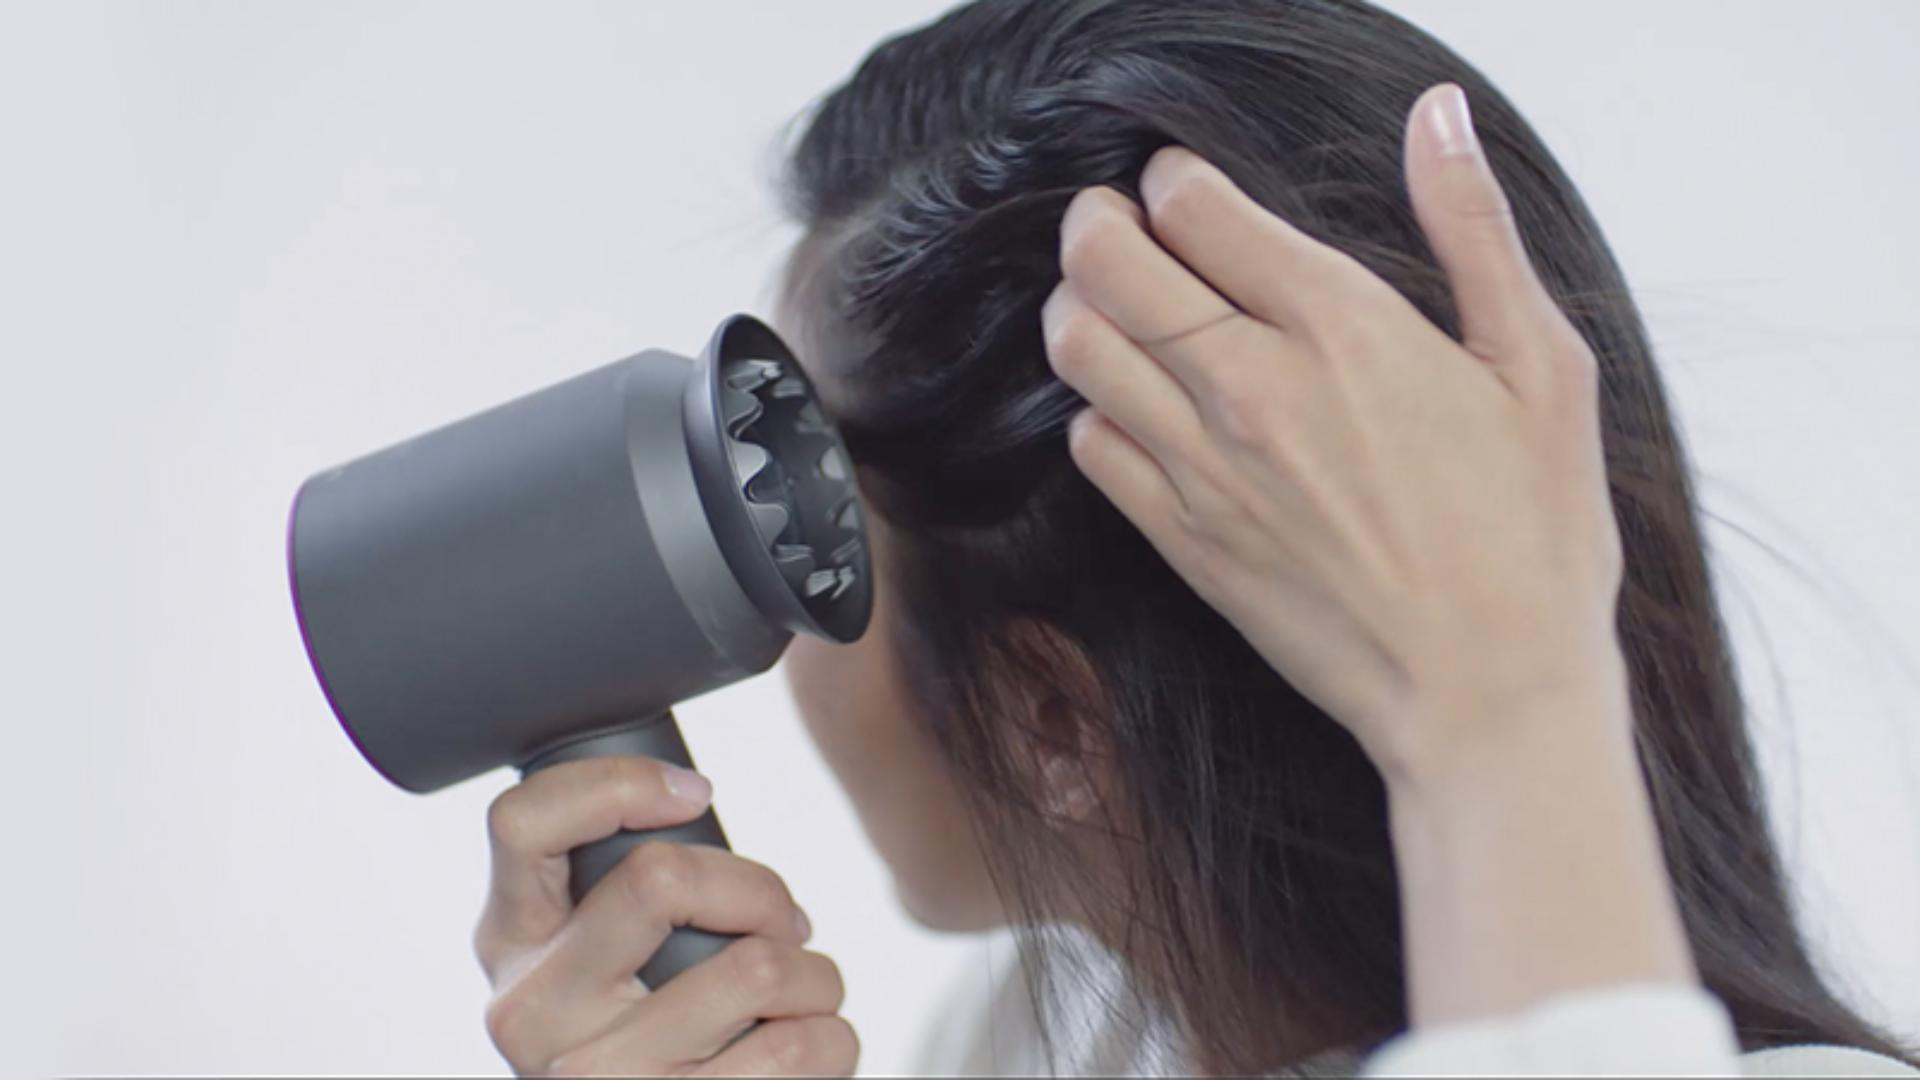 Video about how to use the Dyson Supersonic™ hair dryer Gentle air attachment